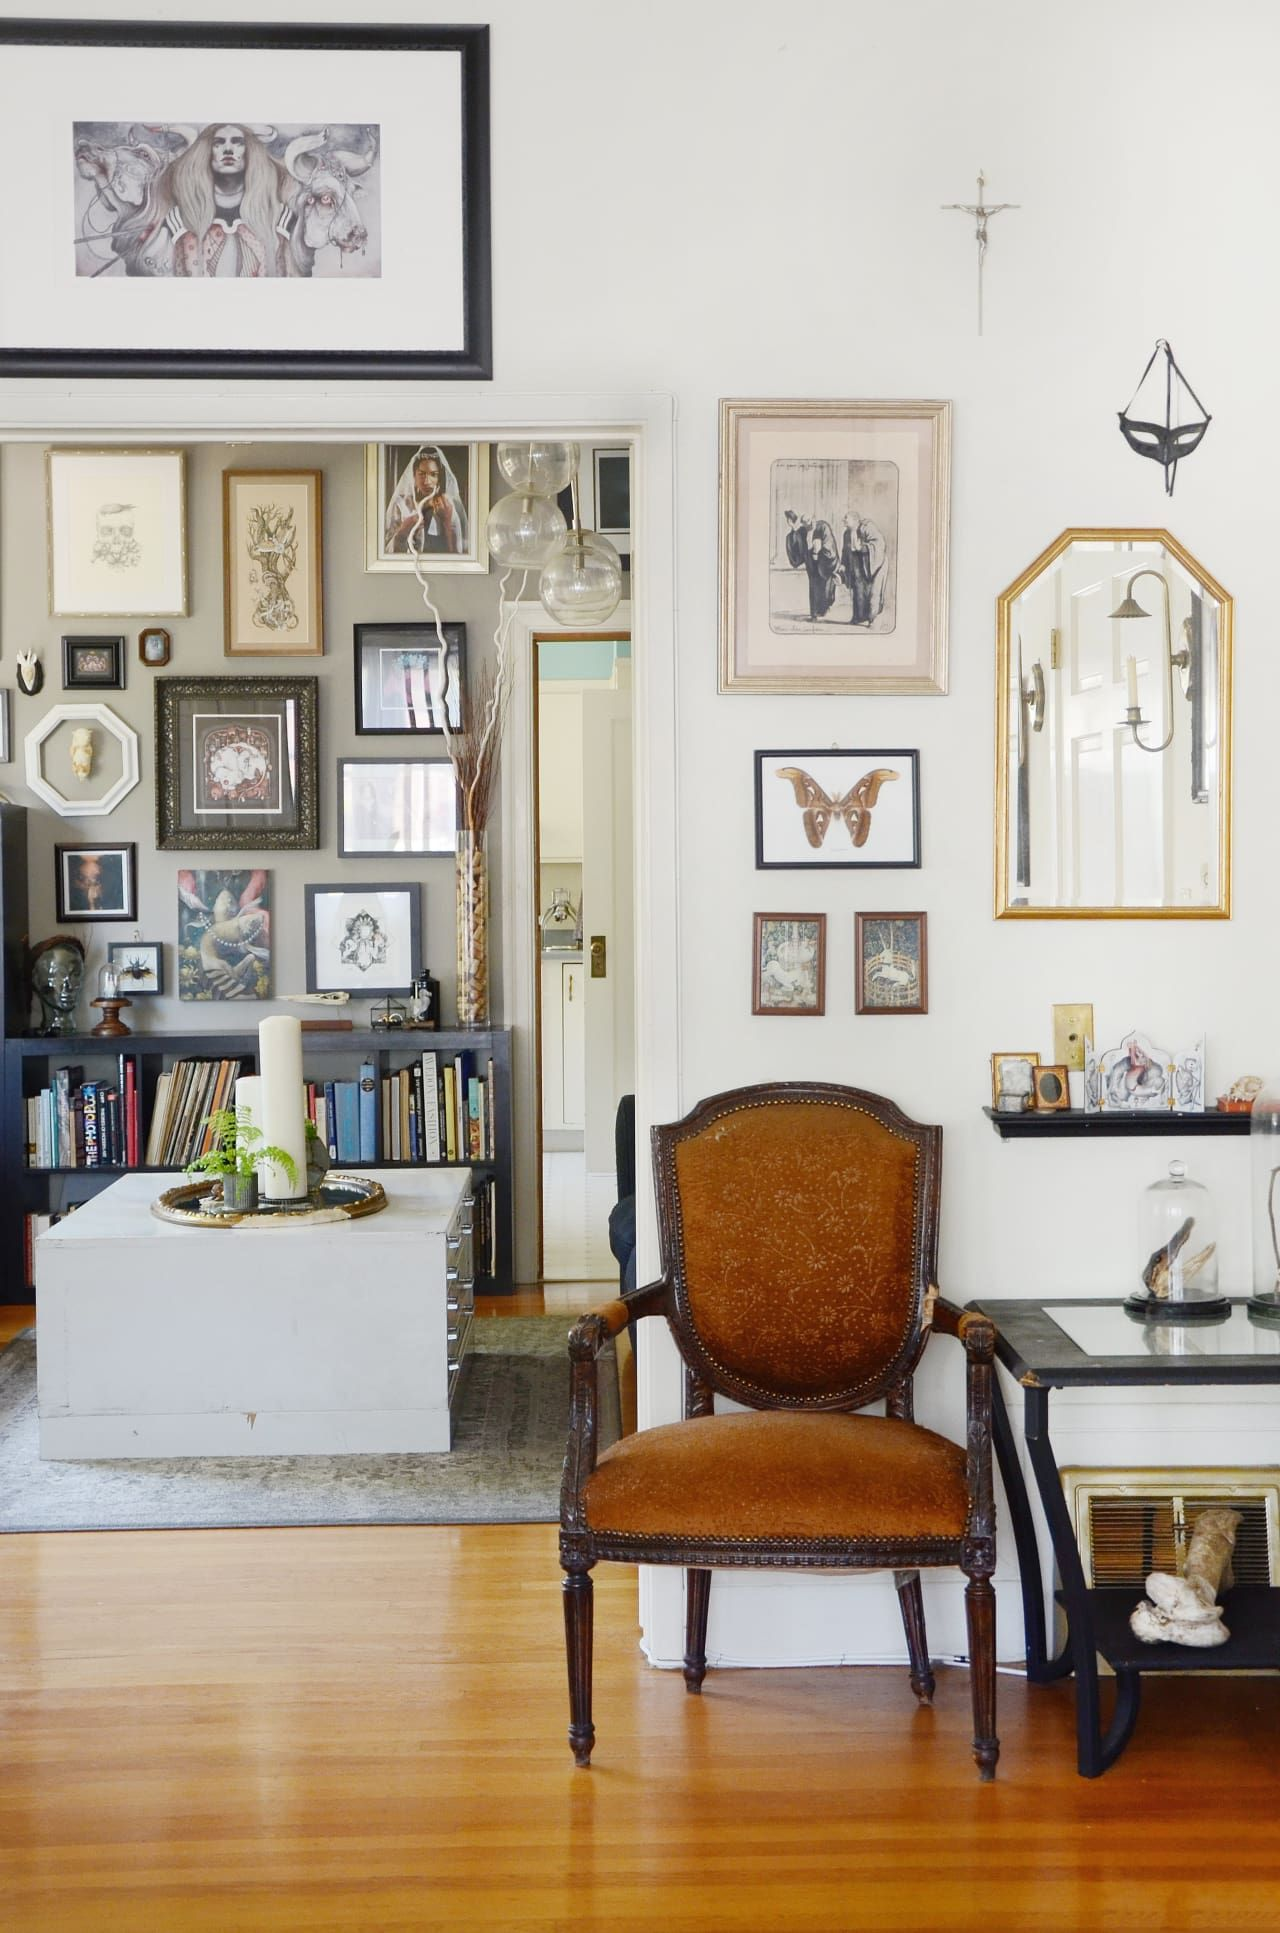 Victorian Style In An Oakland Apartment Of Wonder Oddities